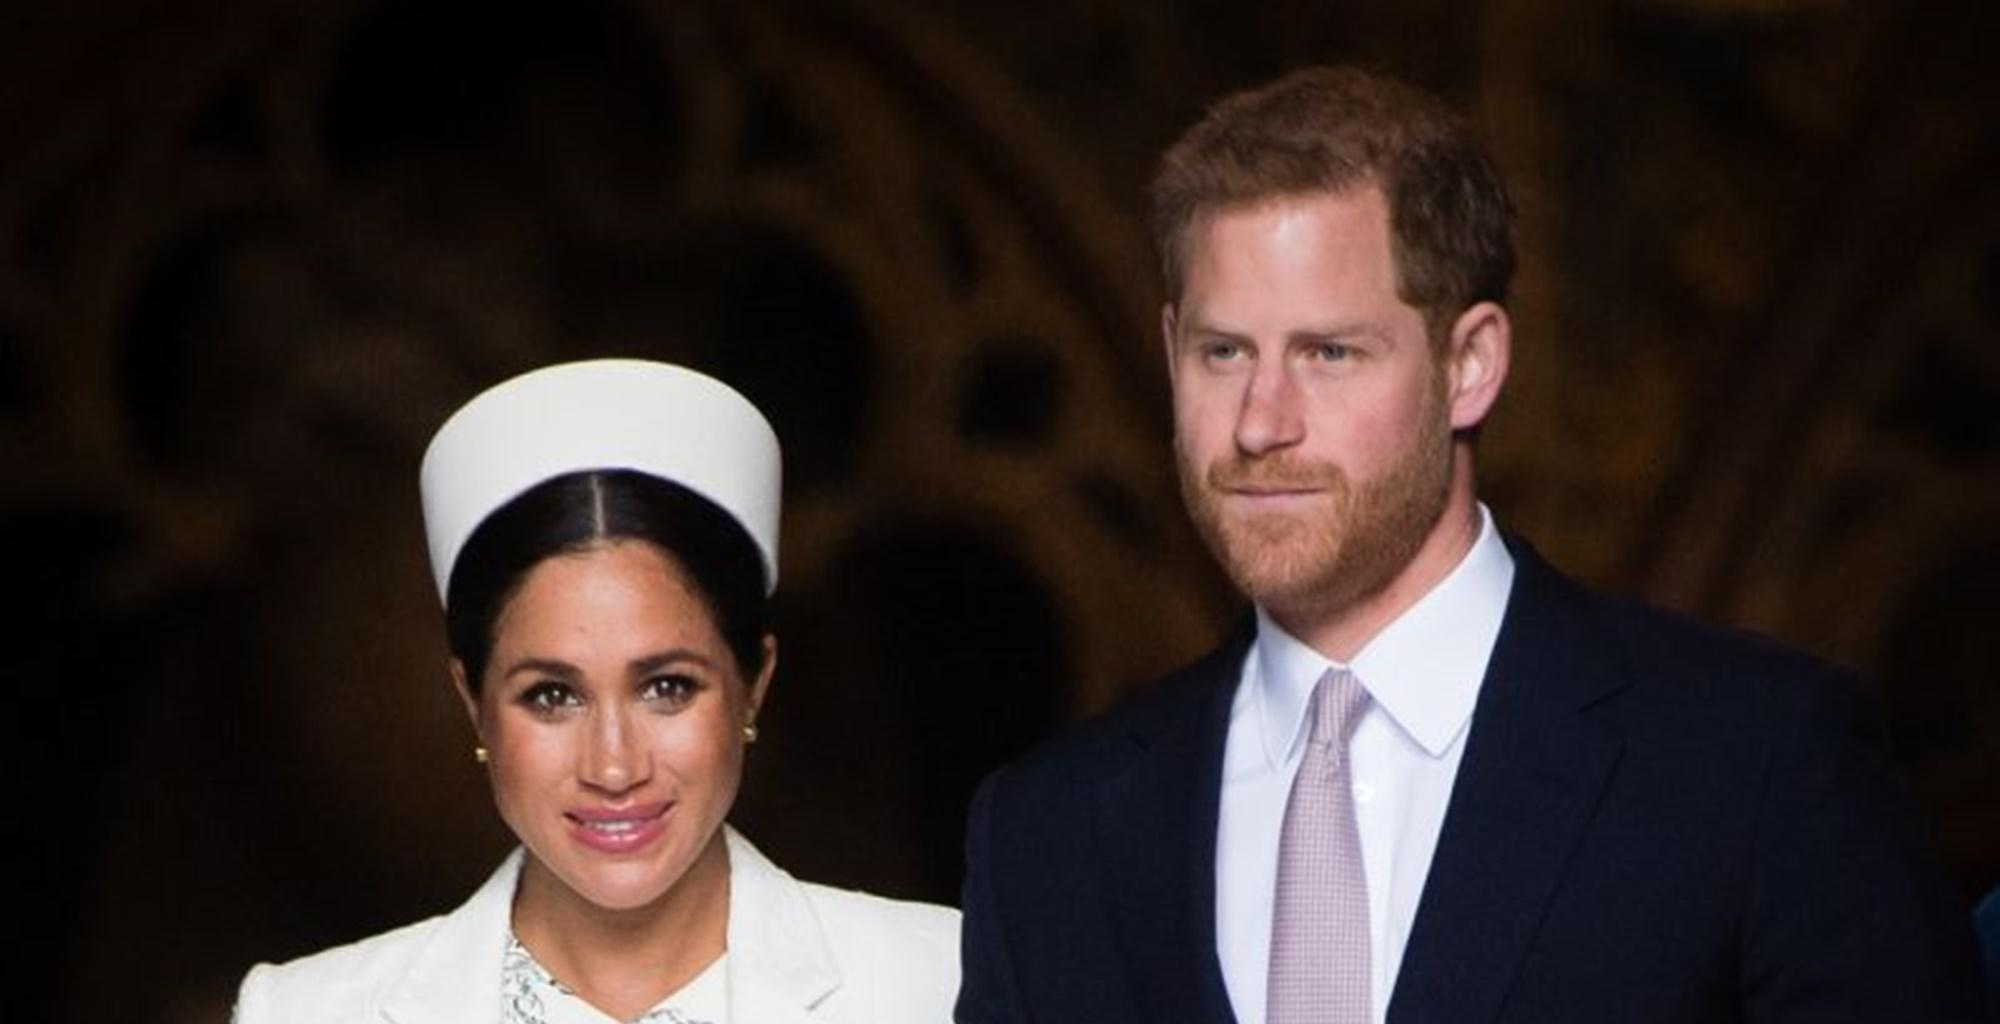 'Controlling' Meghan Markle Expresses Sympathy For Kate Middleton Over Royal Baby Photo Pressure